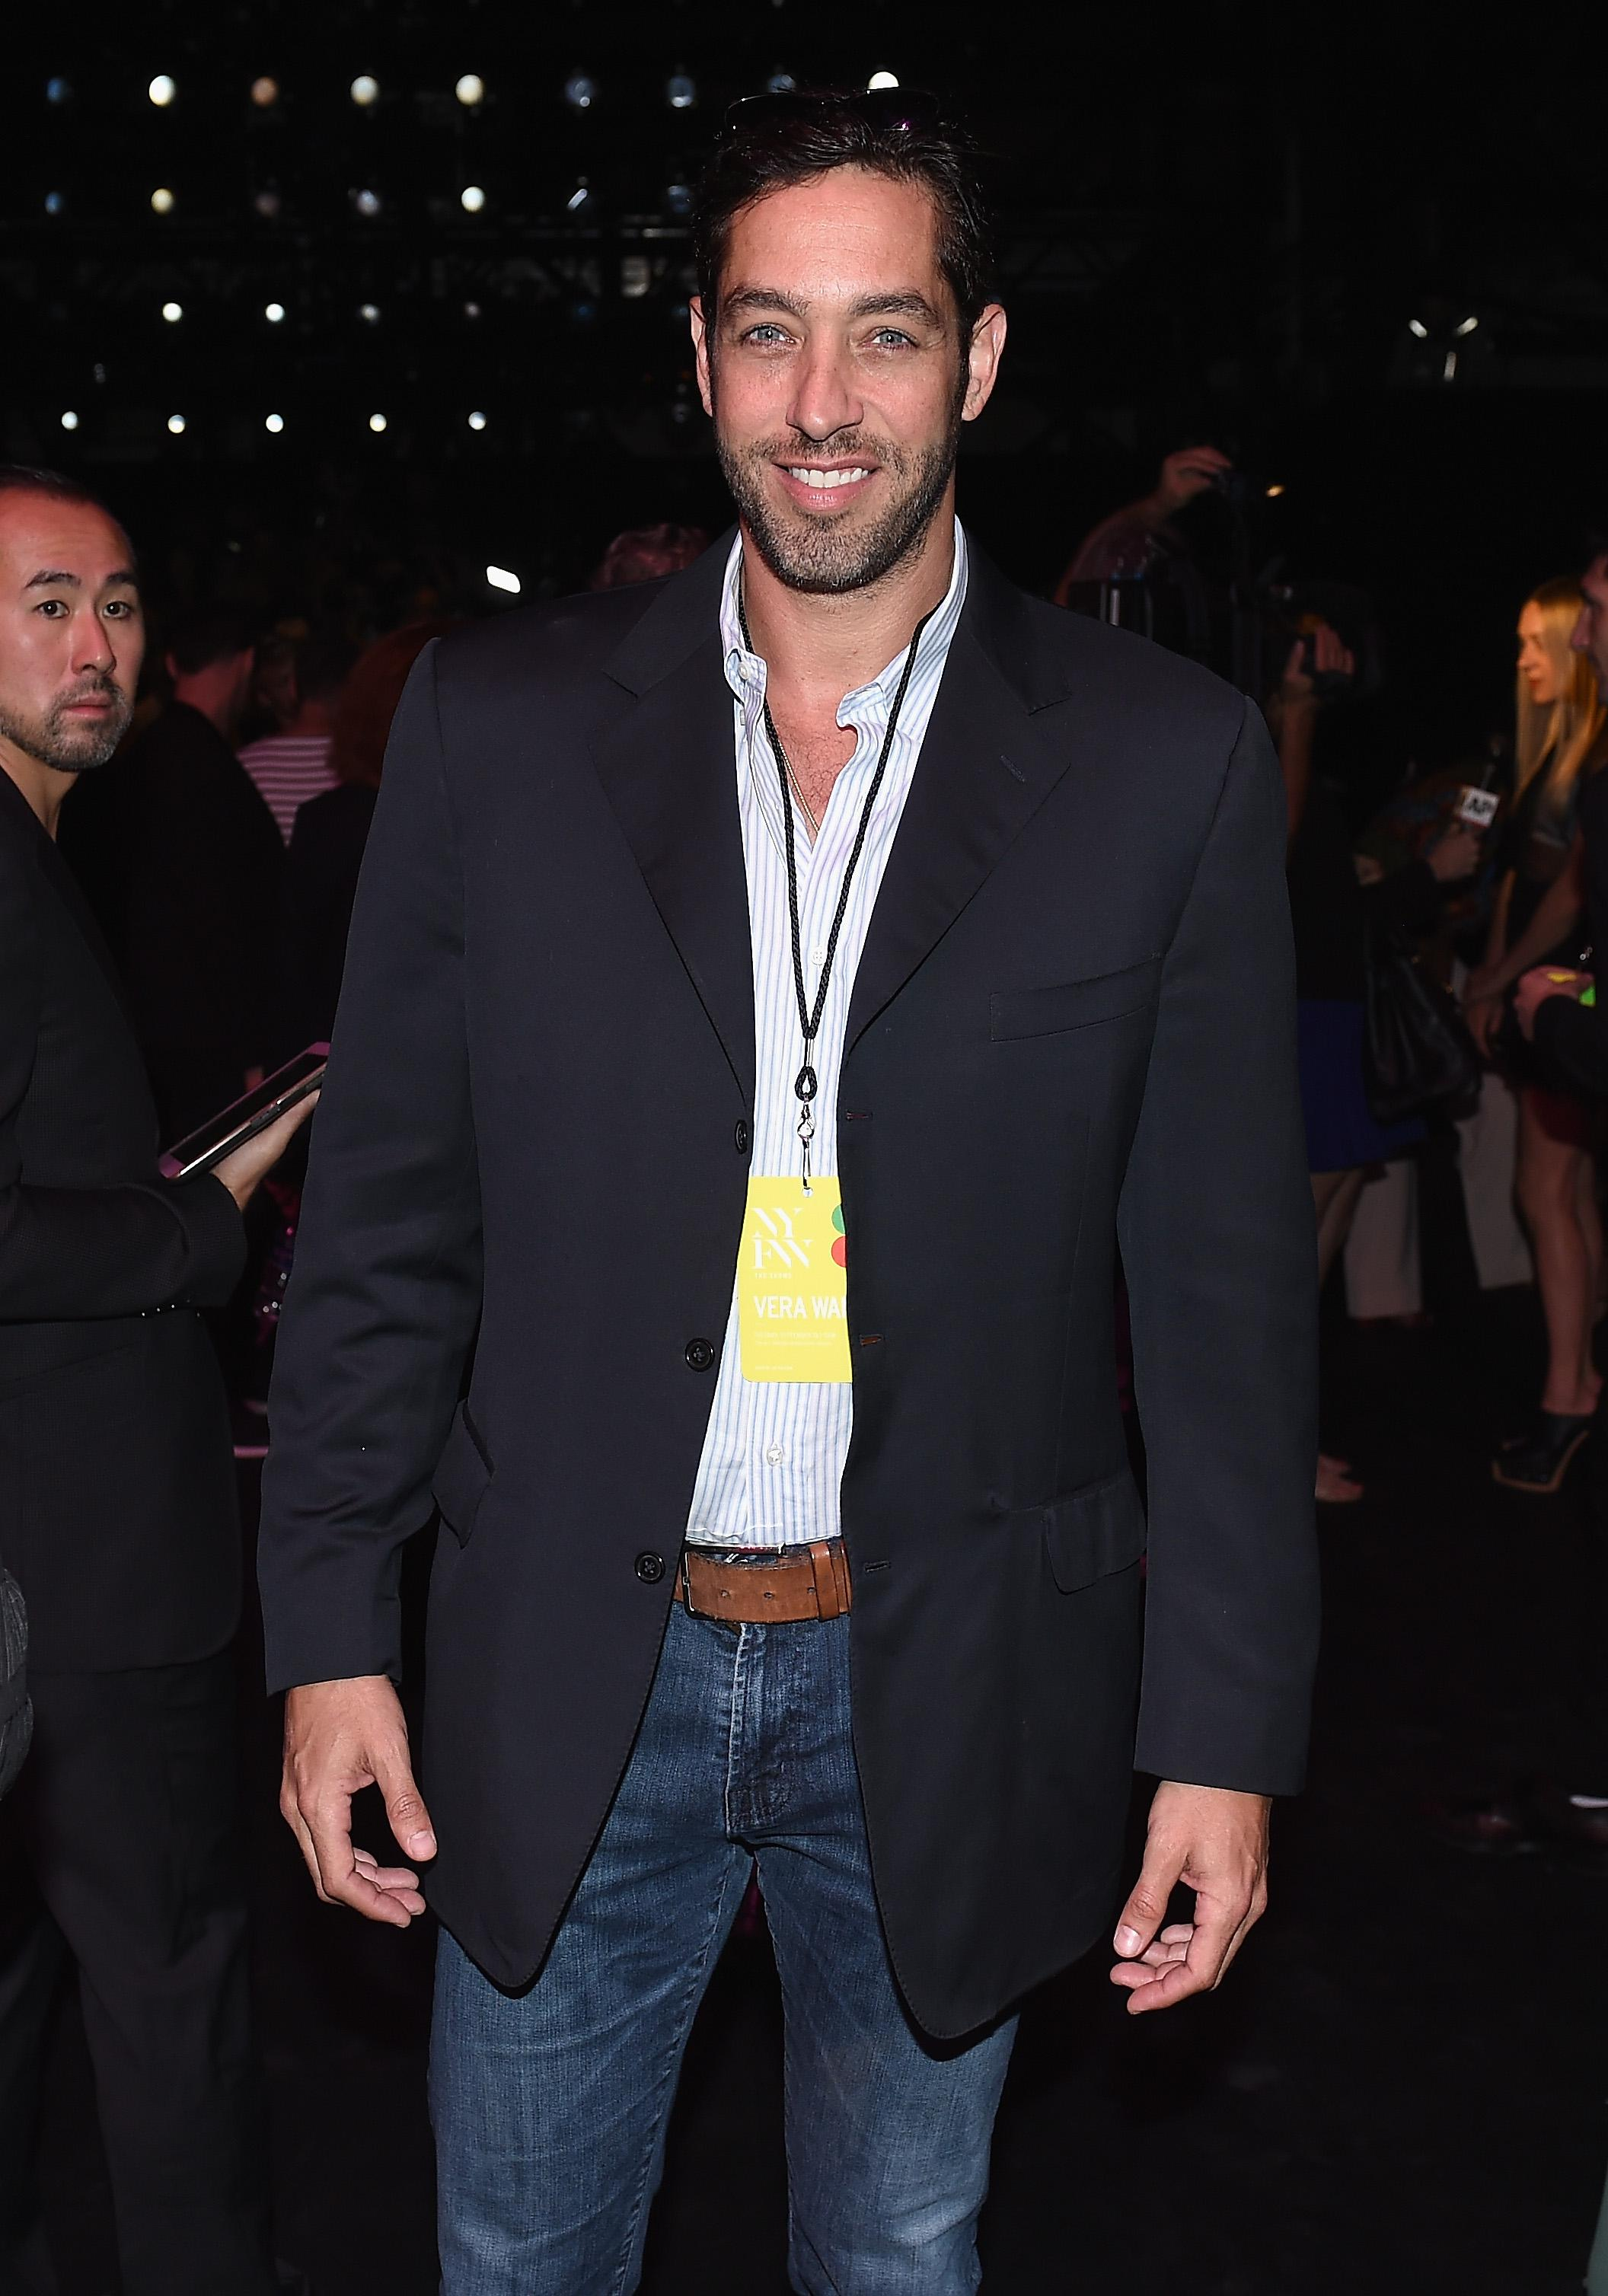 NEW YORK, NY - SEPTEMBER 13: Nick Loeb attends the Vera Wang Collection fashion show during New York Fashion Week: The Shows at The Arc, Skylight at Moynihan Station on September 13, 2016 in New York City.  (Photo by Nicholas Hunt/Getty Images for New York Fashion Week: The Shows)